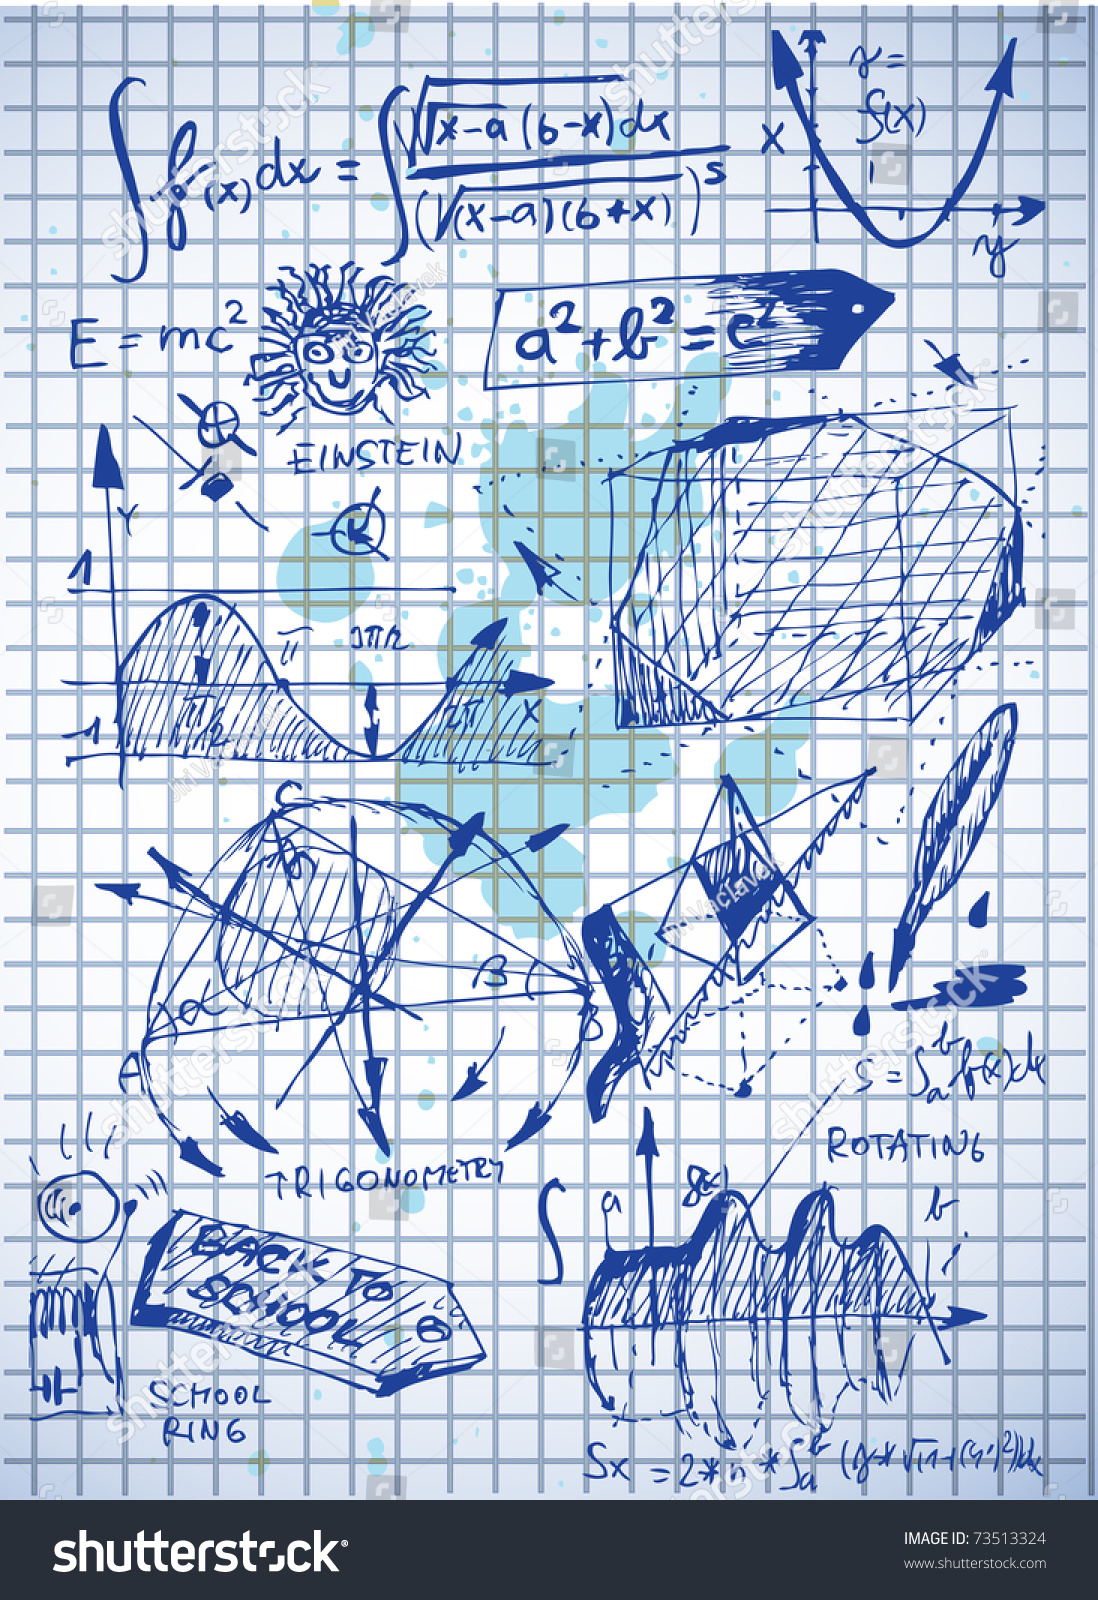 Math Problems On White Paper Stock Vector 73513324 - Shutterstock